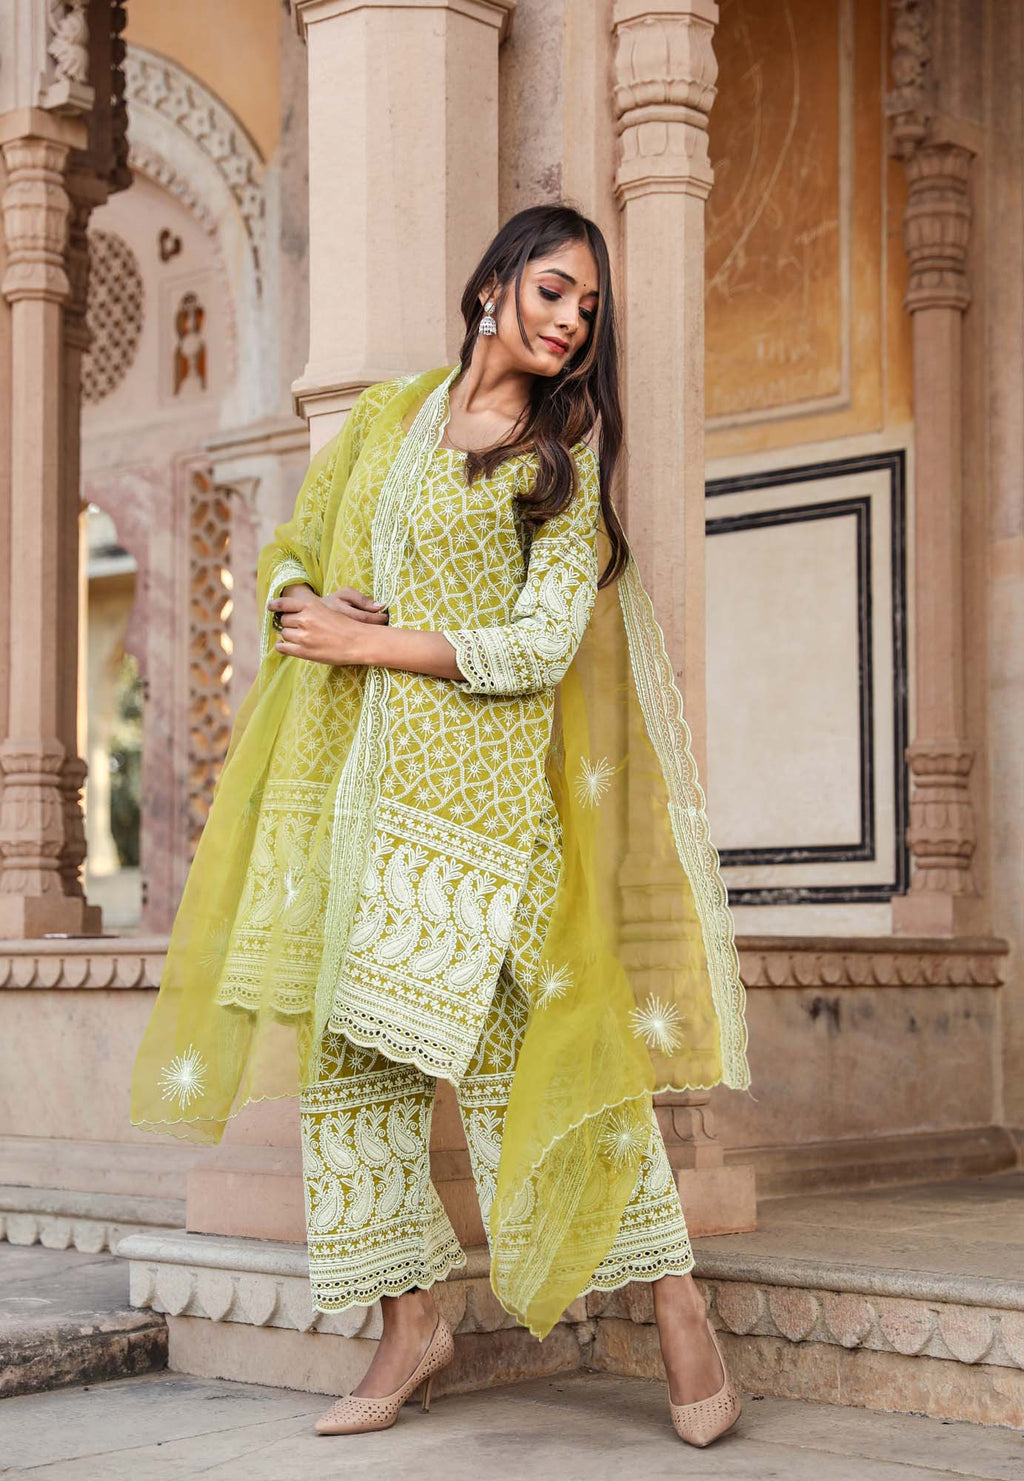 Hina Green Chikan Embroidered Salwar Suit Set - Riviera Closet